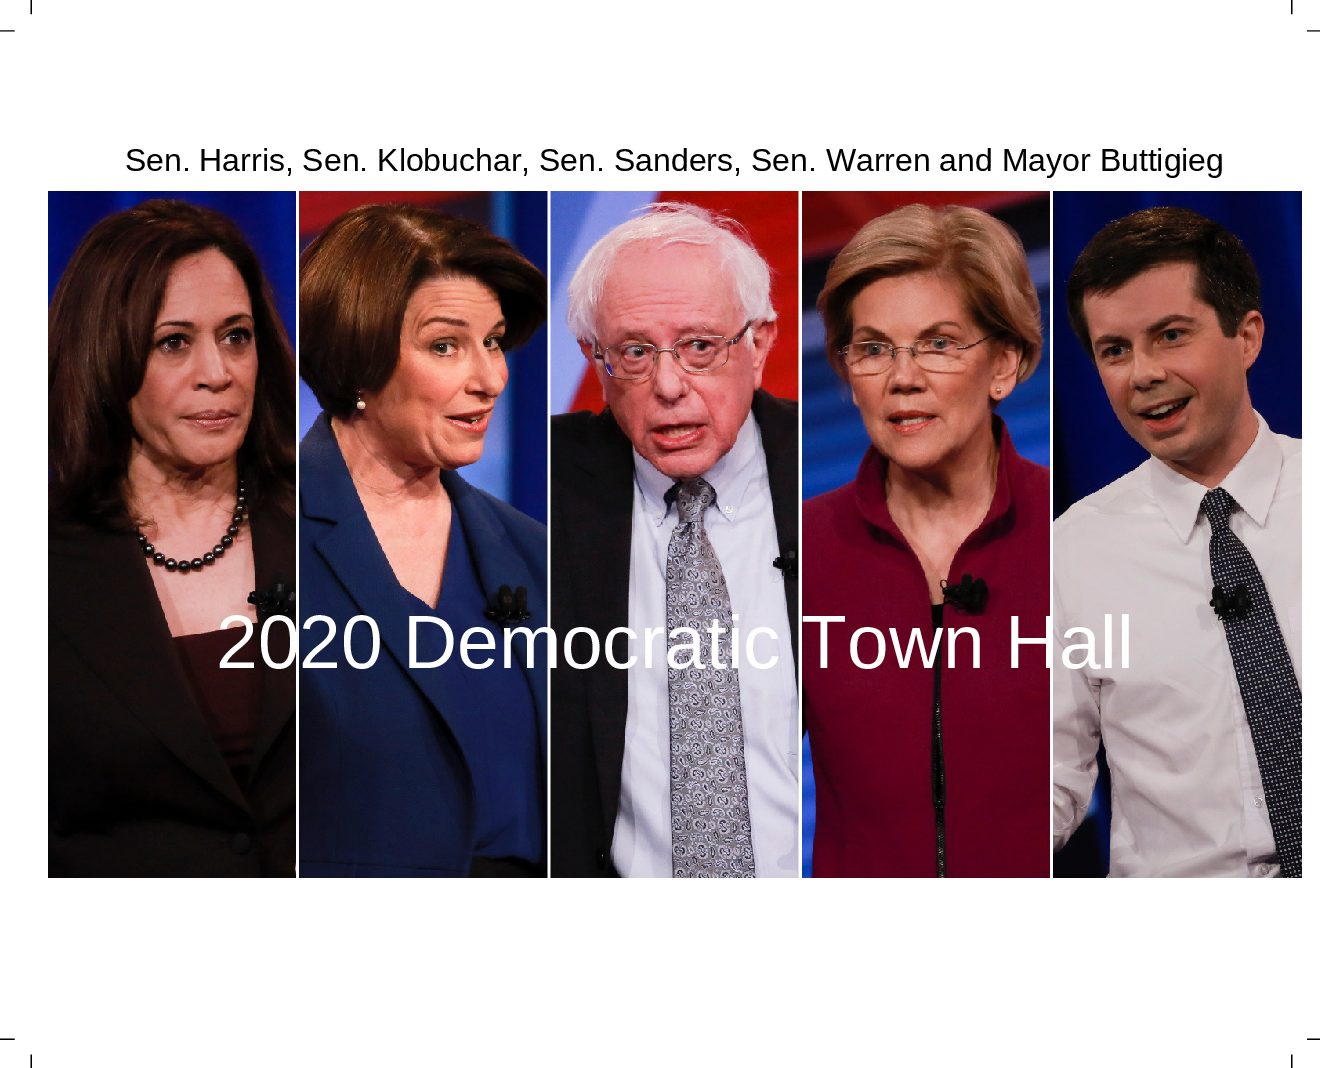 2020 Democratic Town Hall